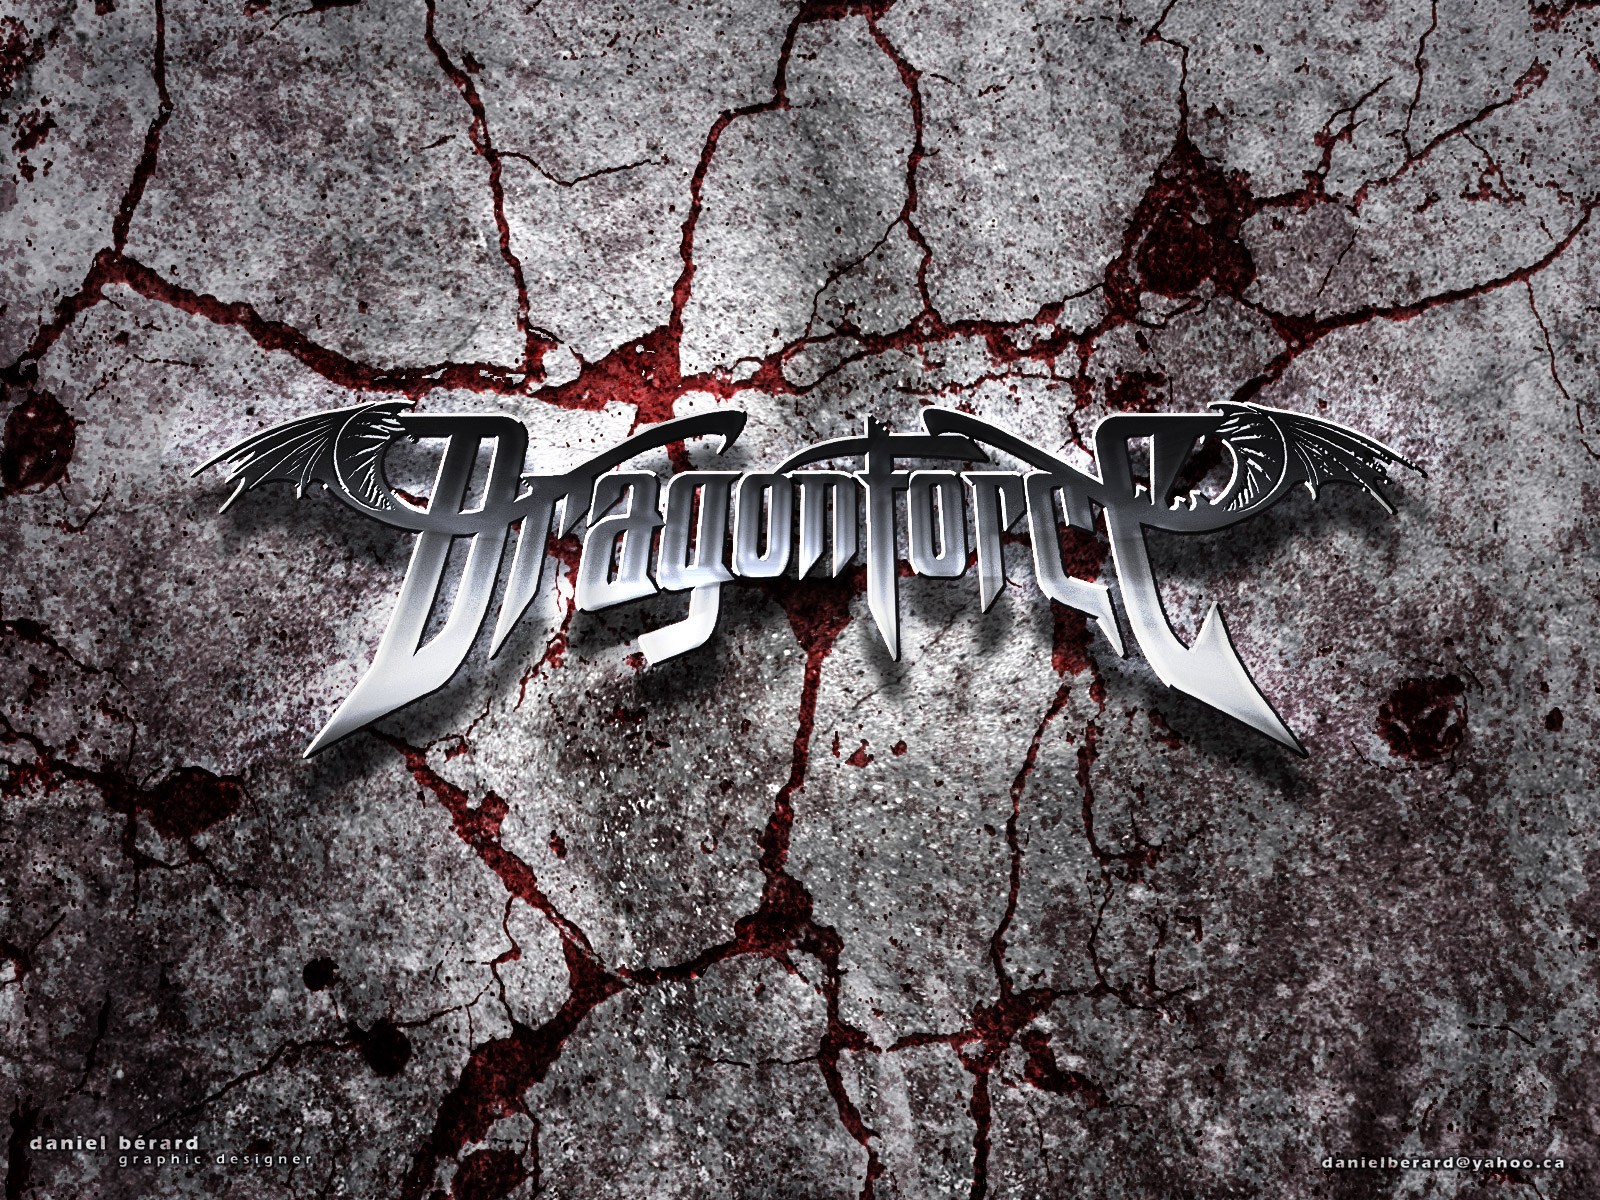 DragonForce_10_1600x1200.jpg